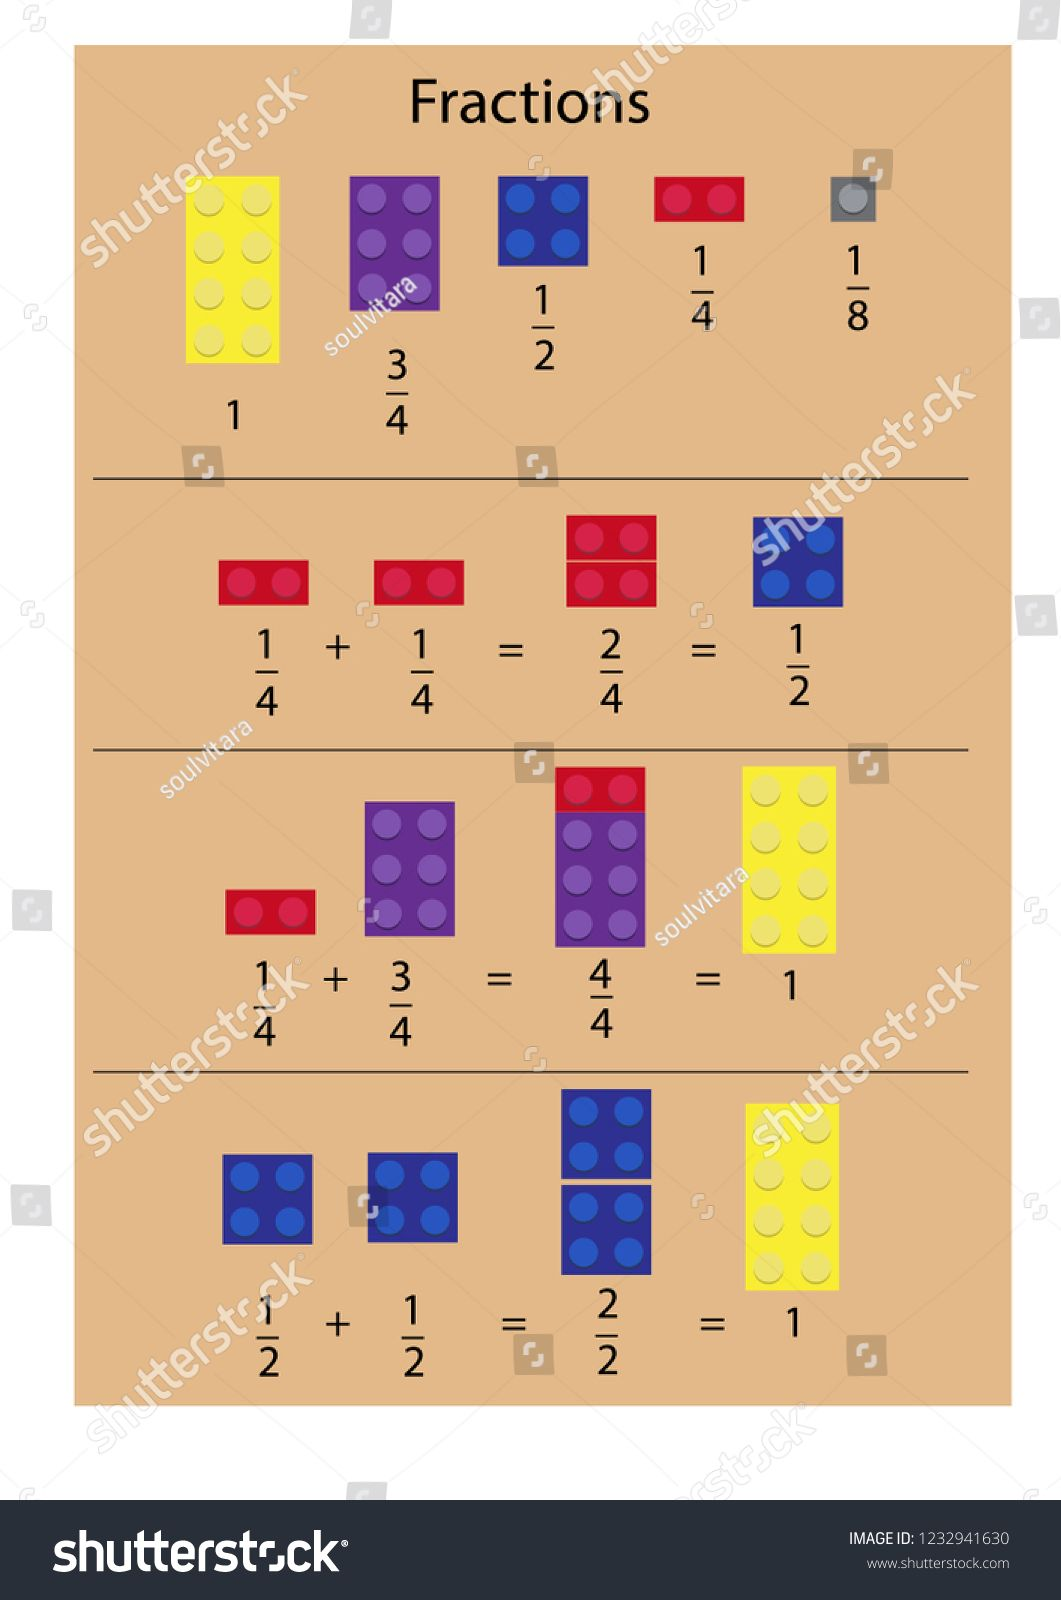 Simple Explanation Of Fractions Theme Using Blocks